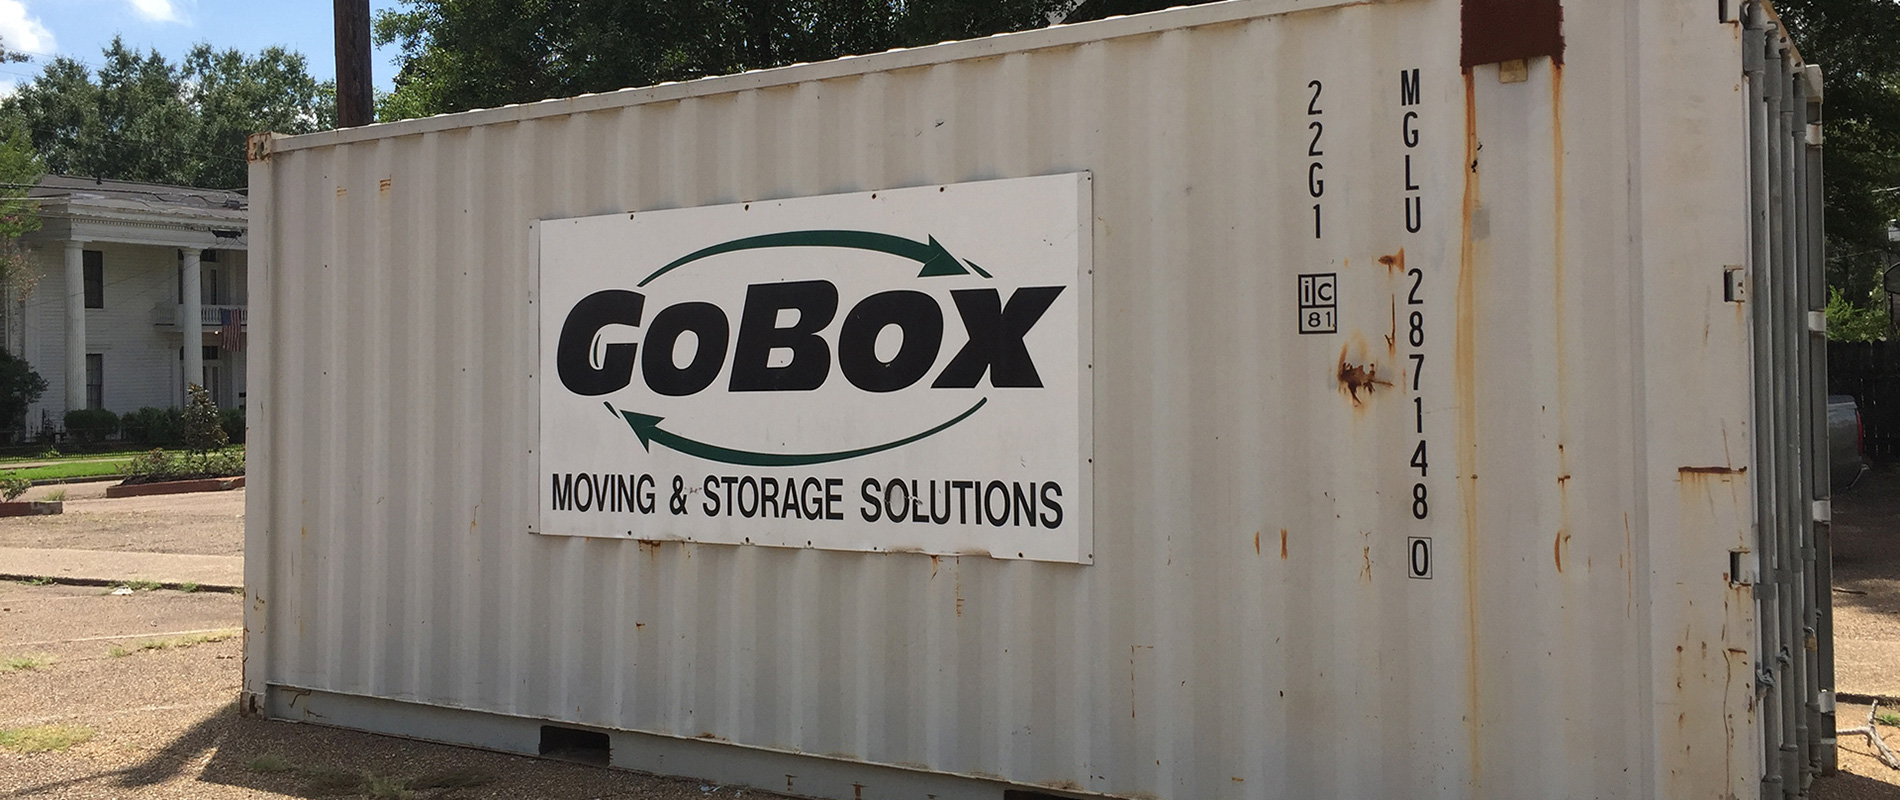 Go Box offers a wide variety of services including portable storage units for industrial and commercial job sites portable office spaces personal moving ... & Waste Removal Recycling and Storage Needs - GoBox